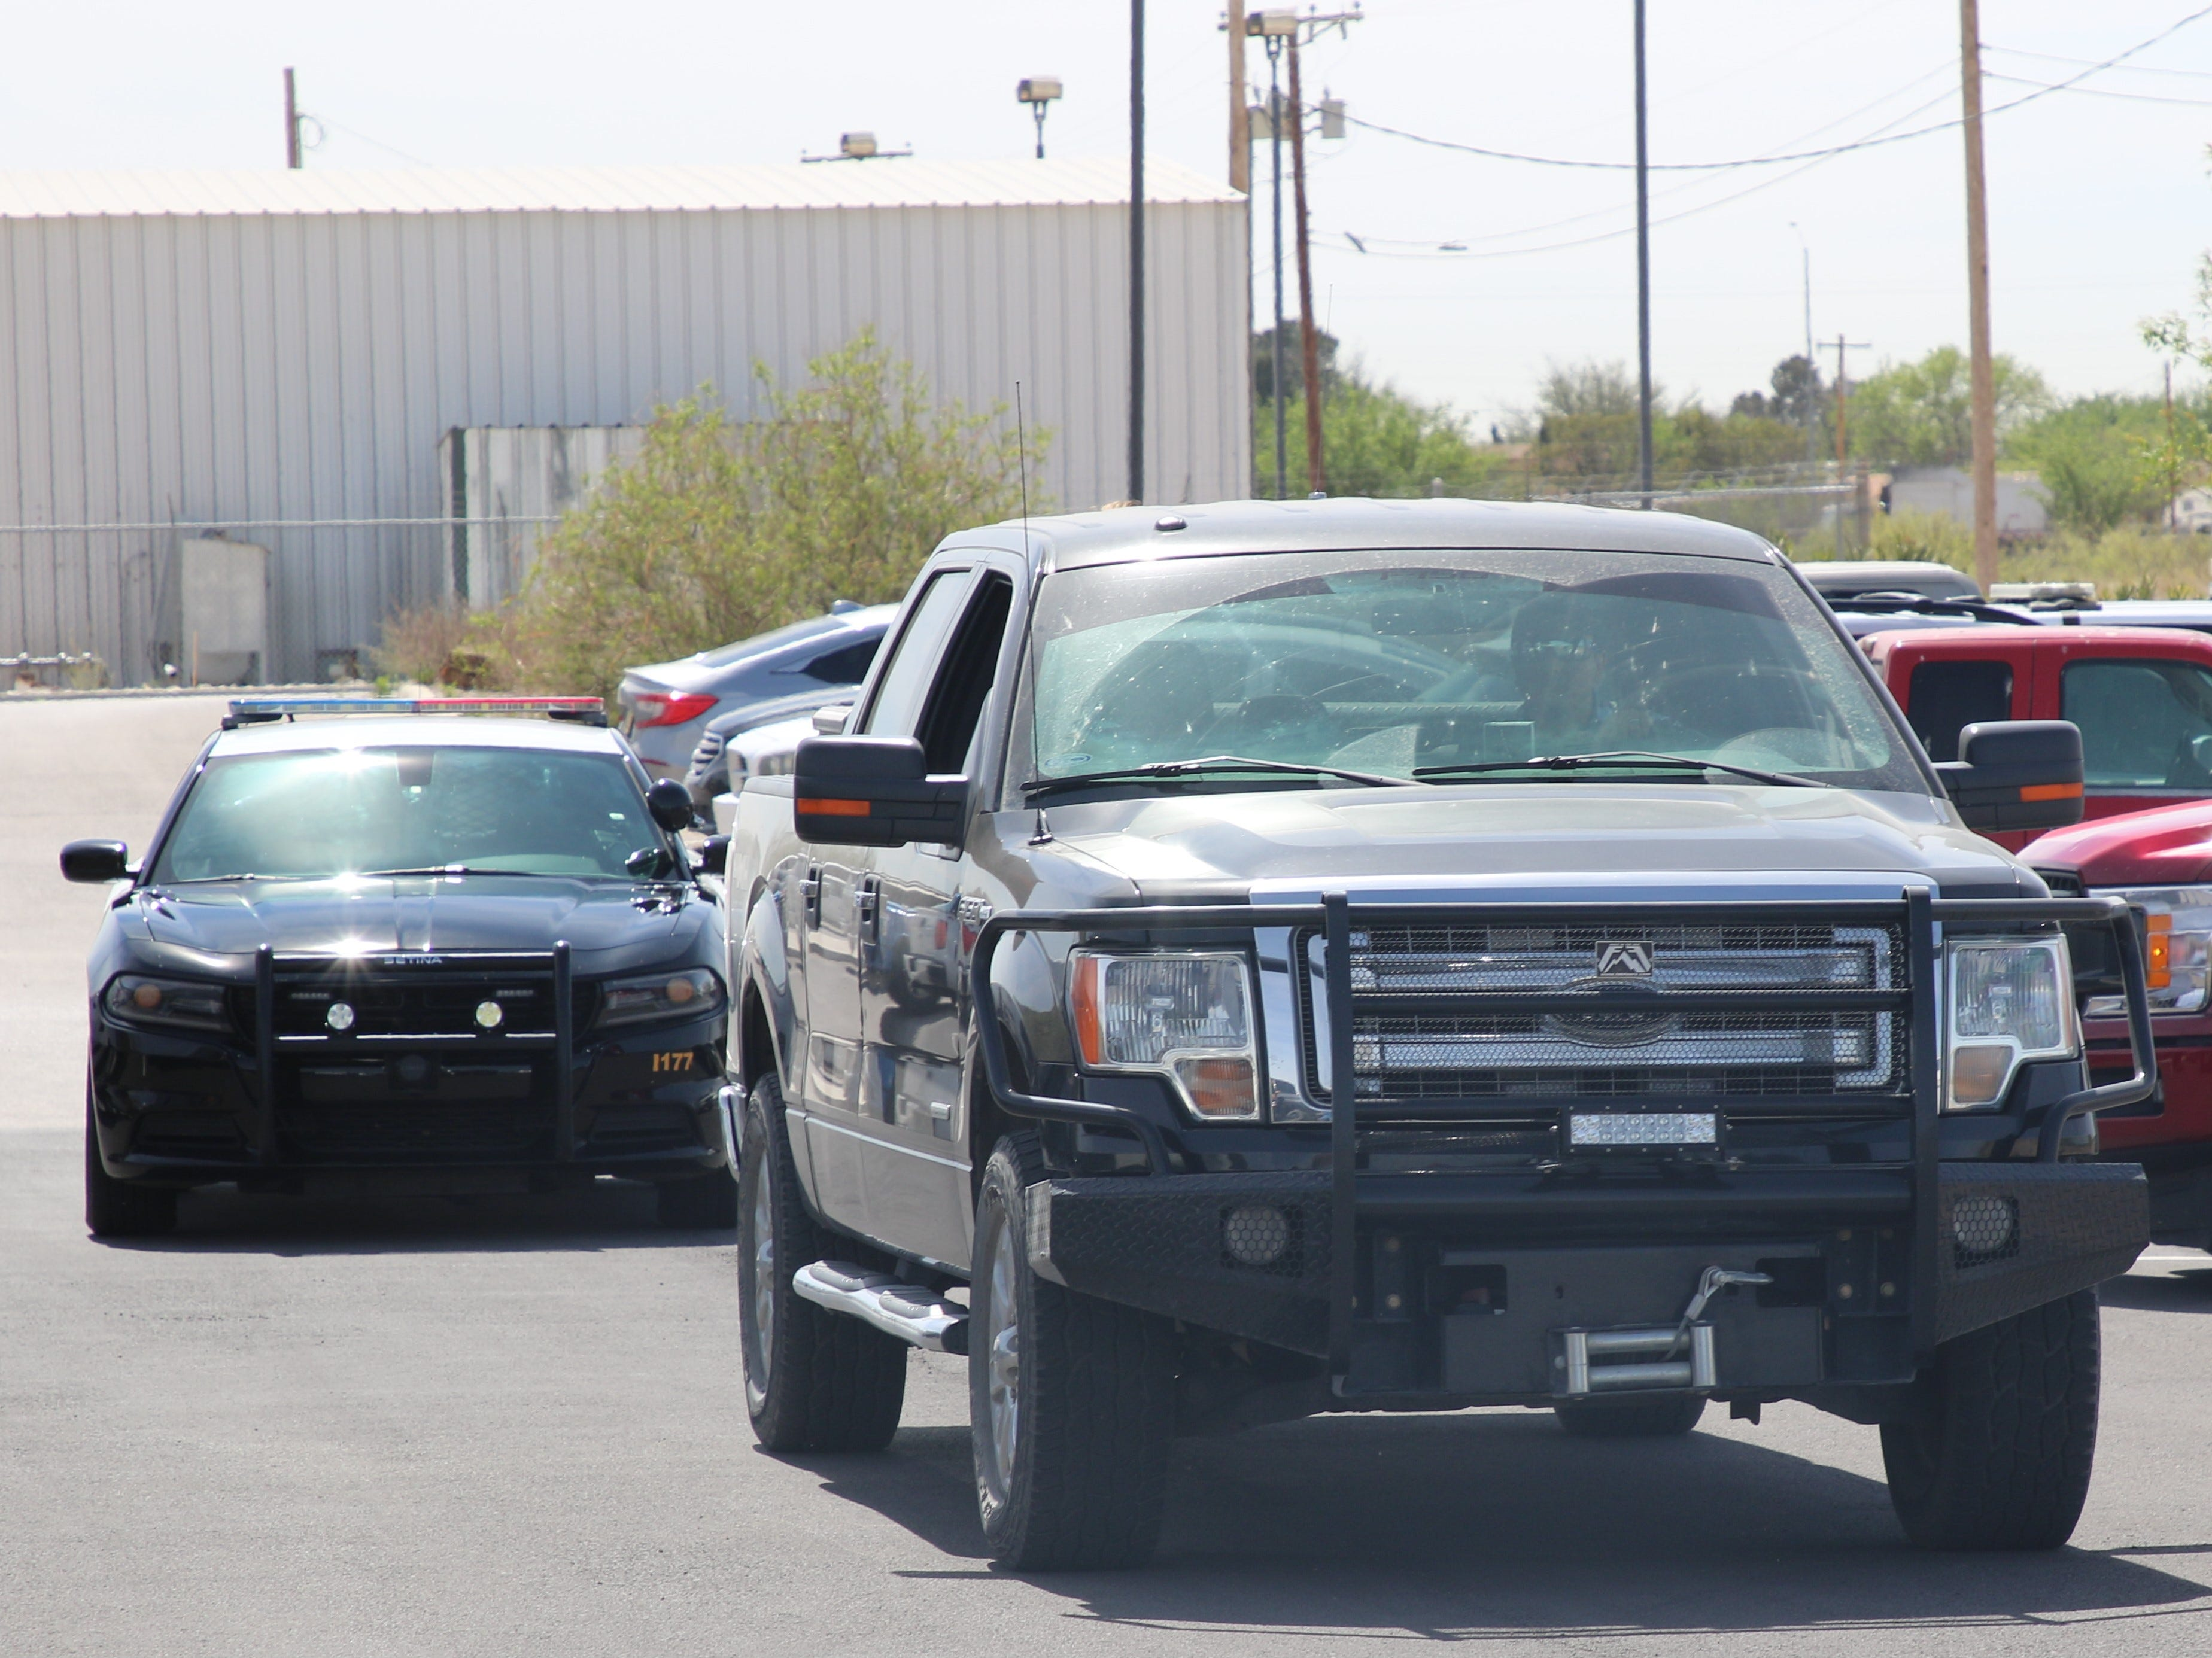 Eddy County Sheriff's deputy Alexander Duchene is pursued by Adrian Rodriguez and Roman Leos April 15 at the Eddy County Sheriff's Office in Carlsbad.